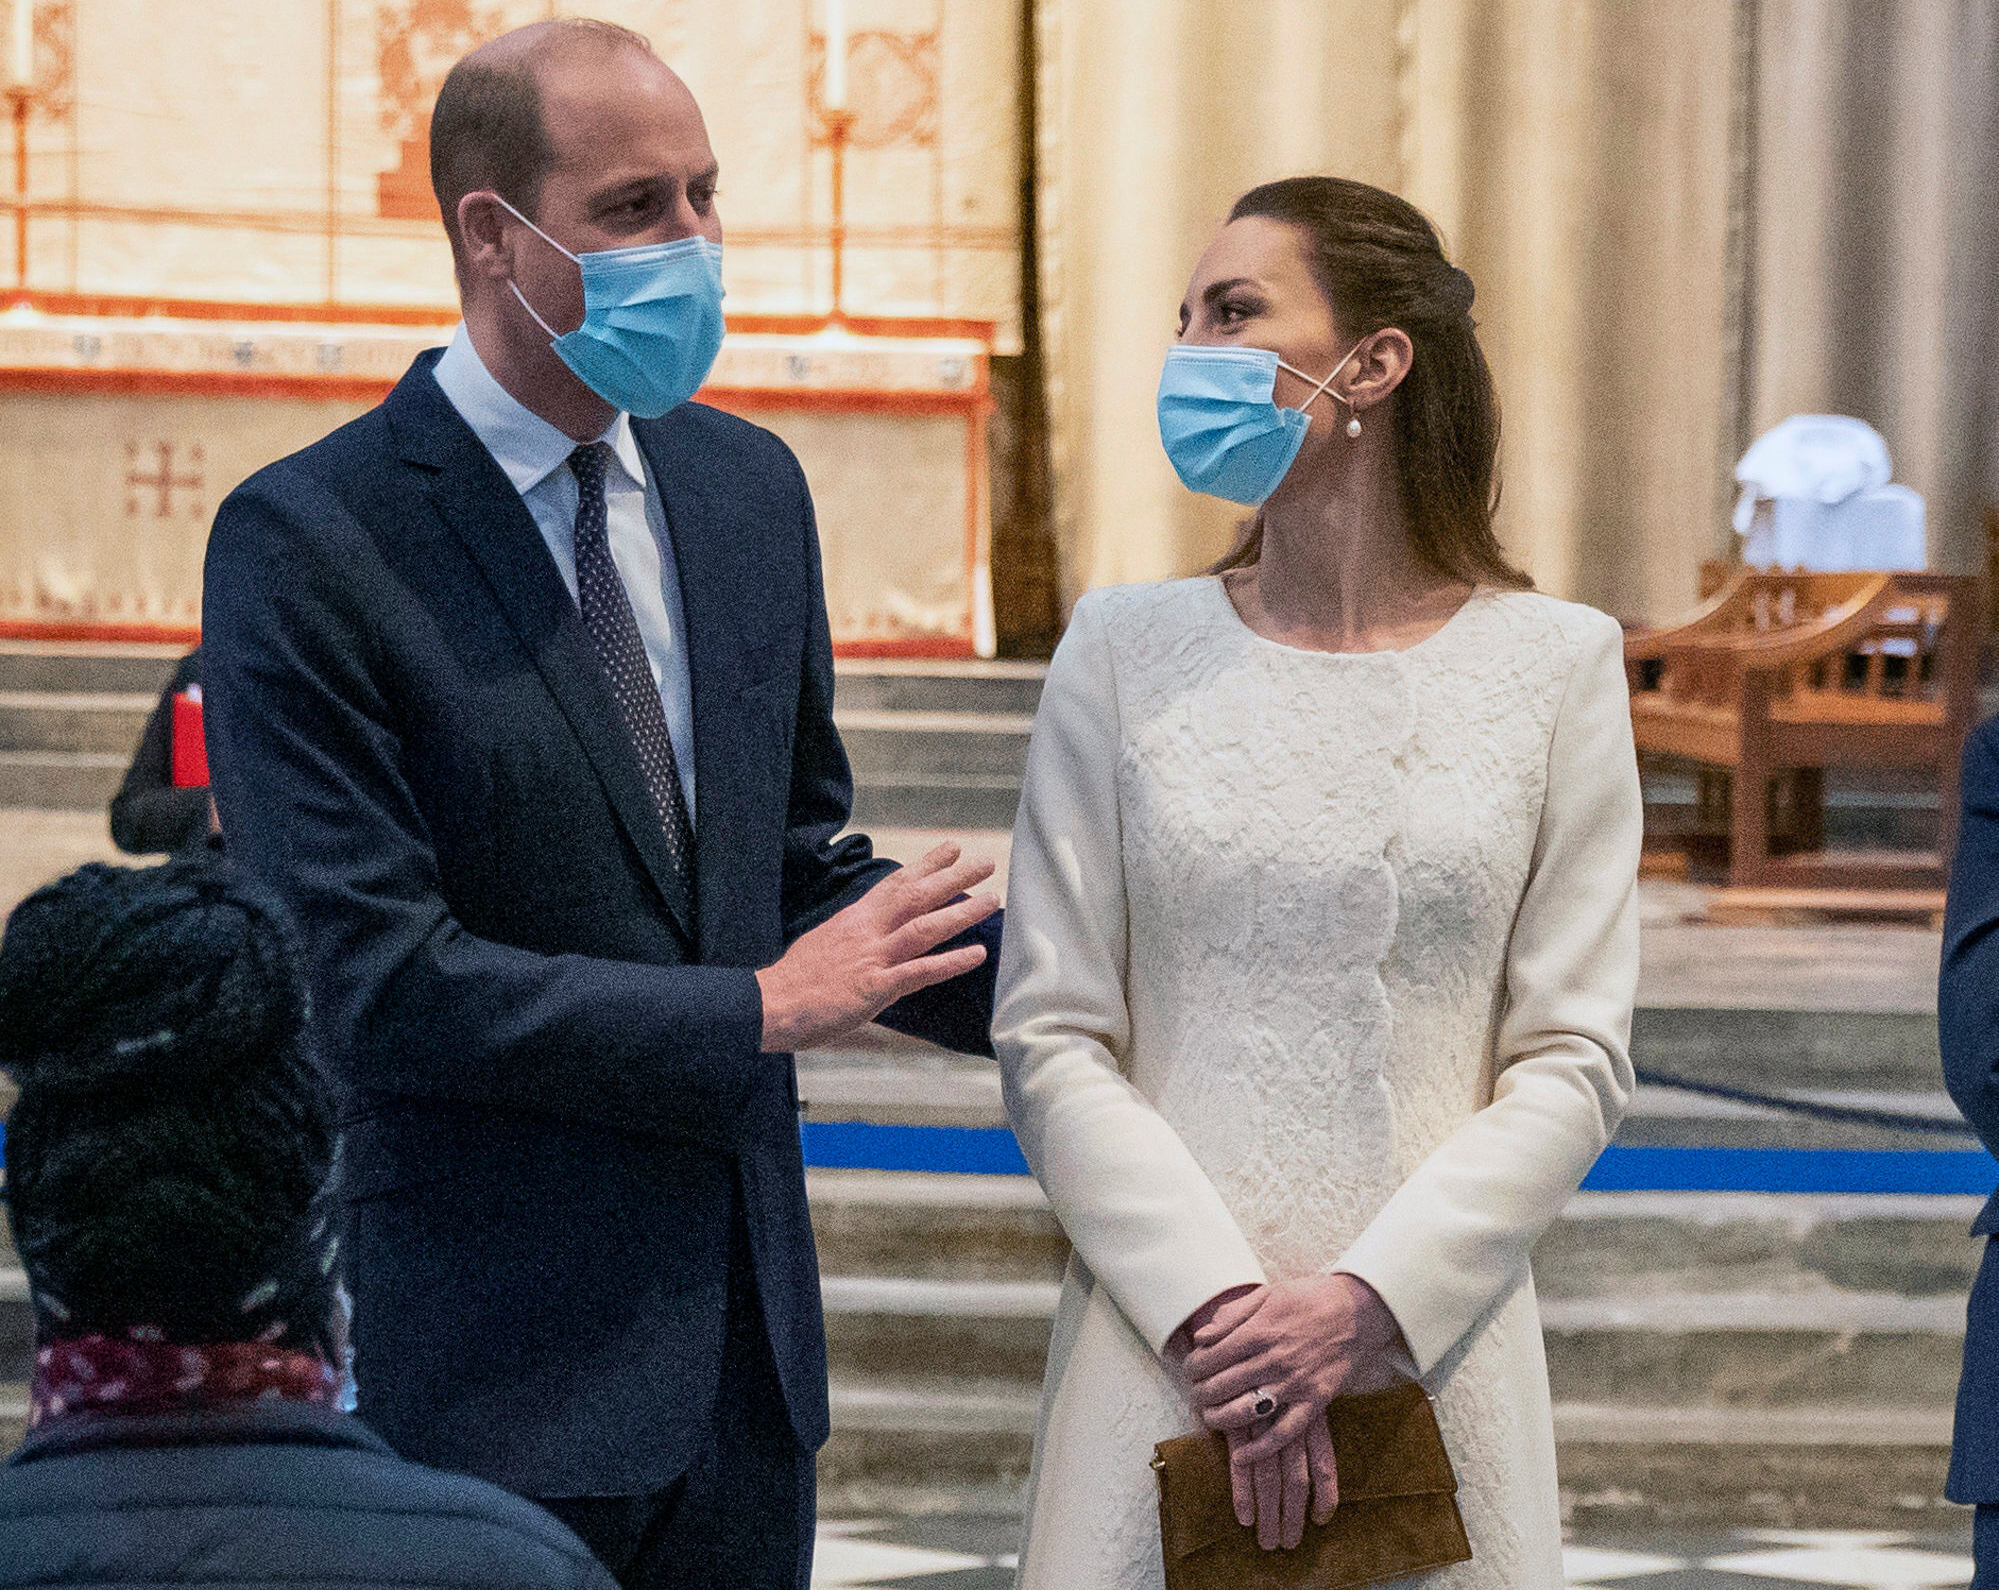 Catherine, Duchess of Cambridge in self-isolation - She had contact with an infected person